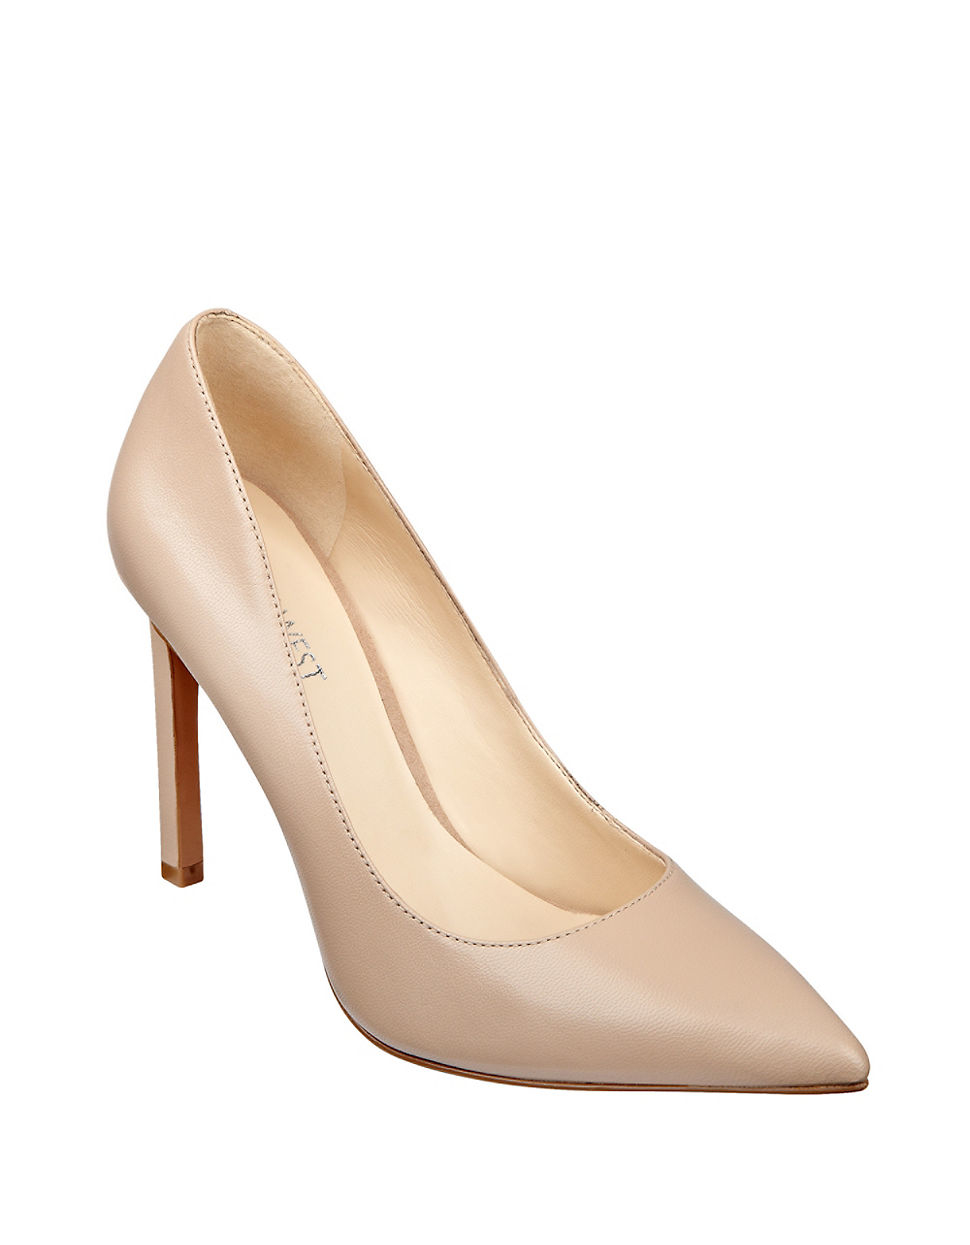 88c3cd8565f Nine West Natural Tatiana Point-toe Leather Pumps